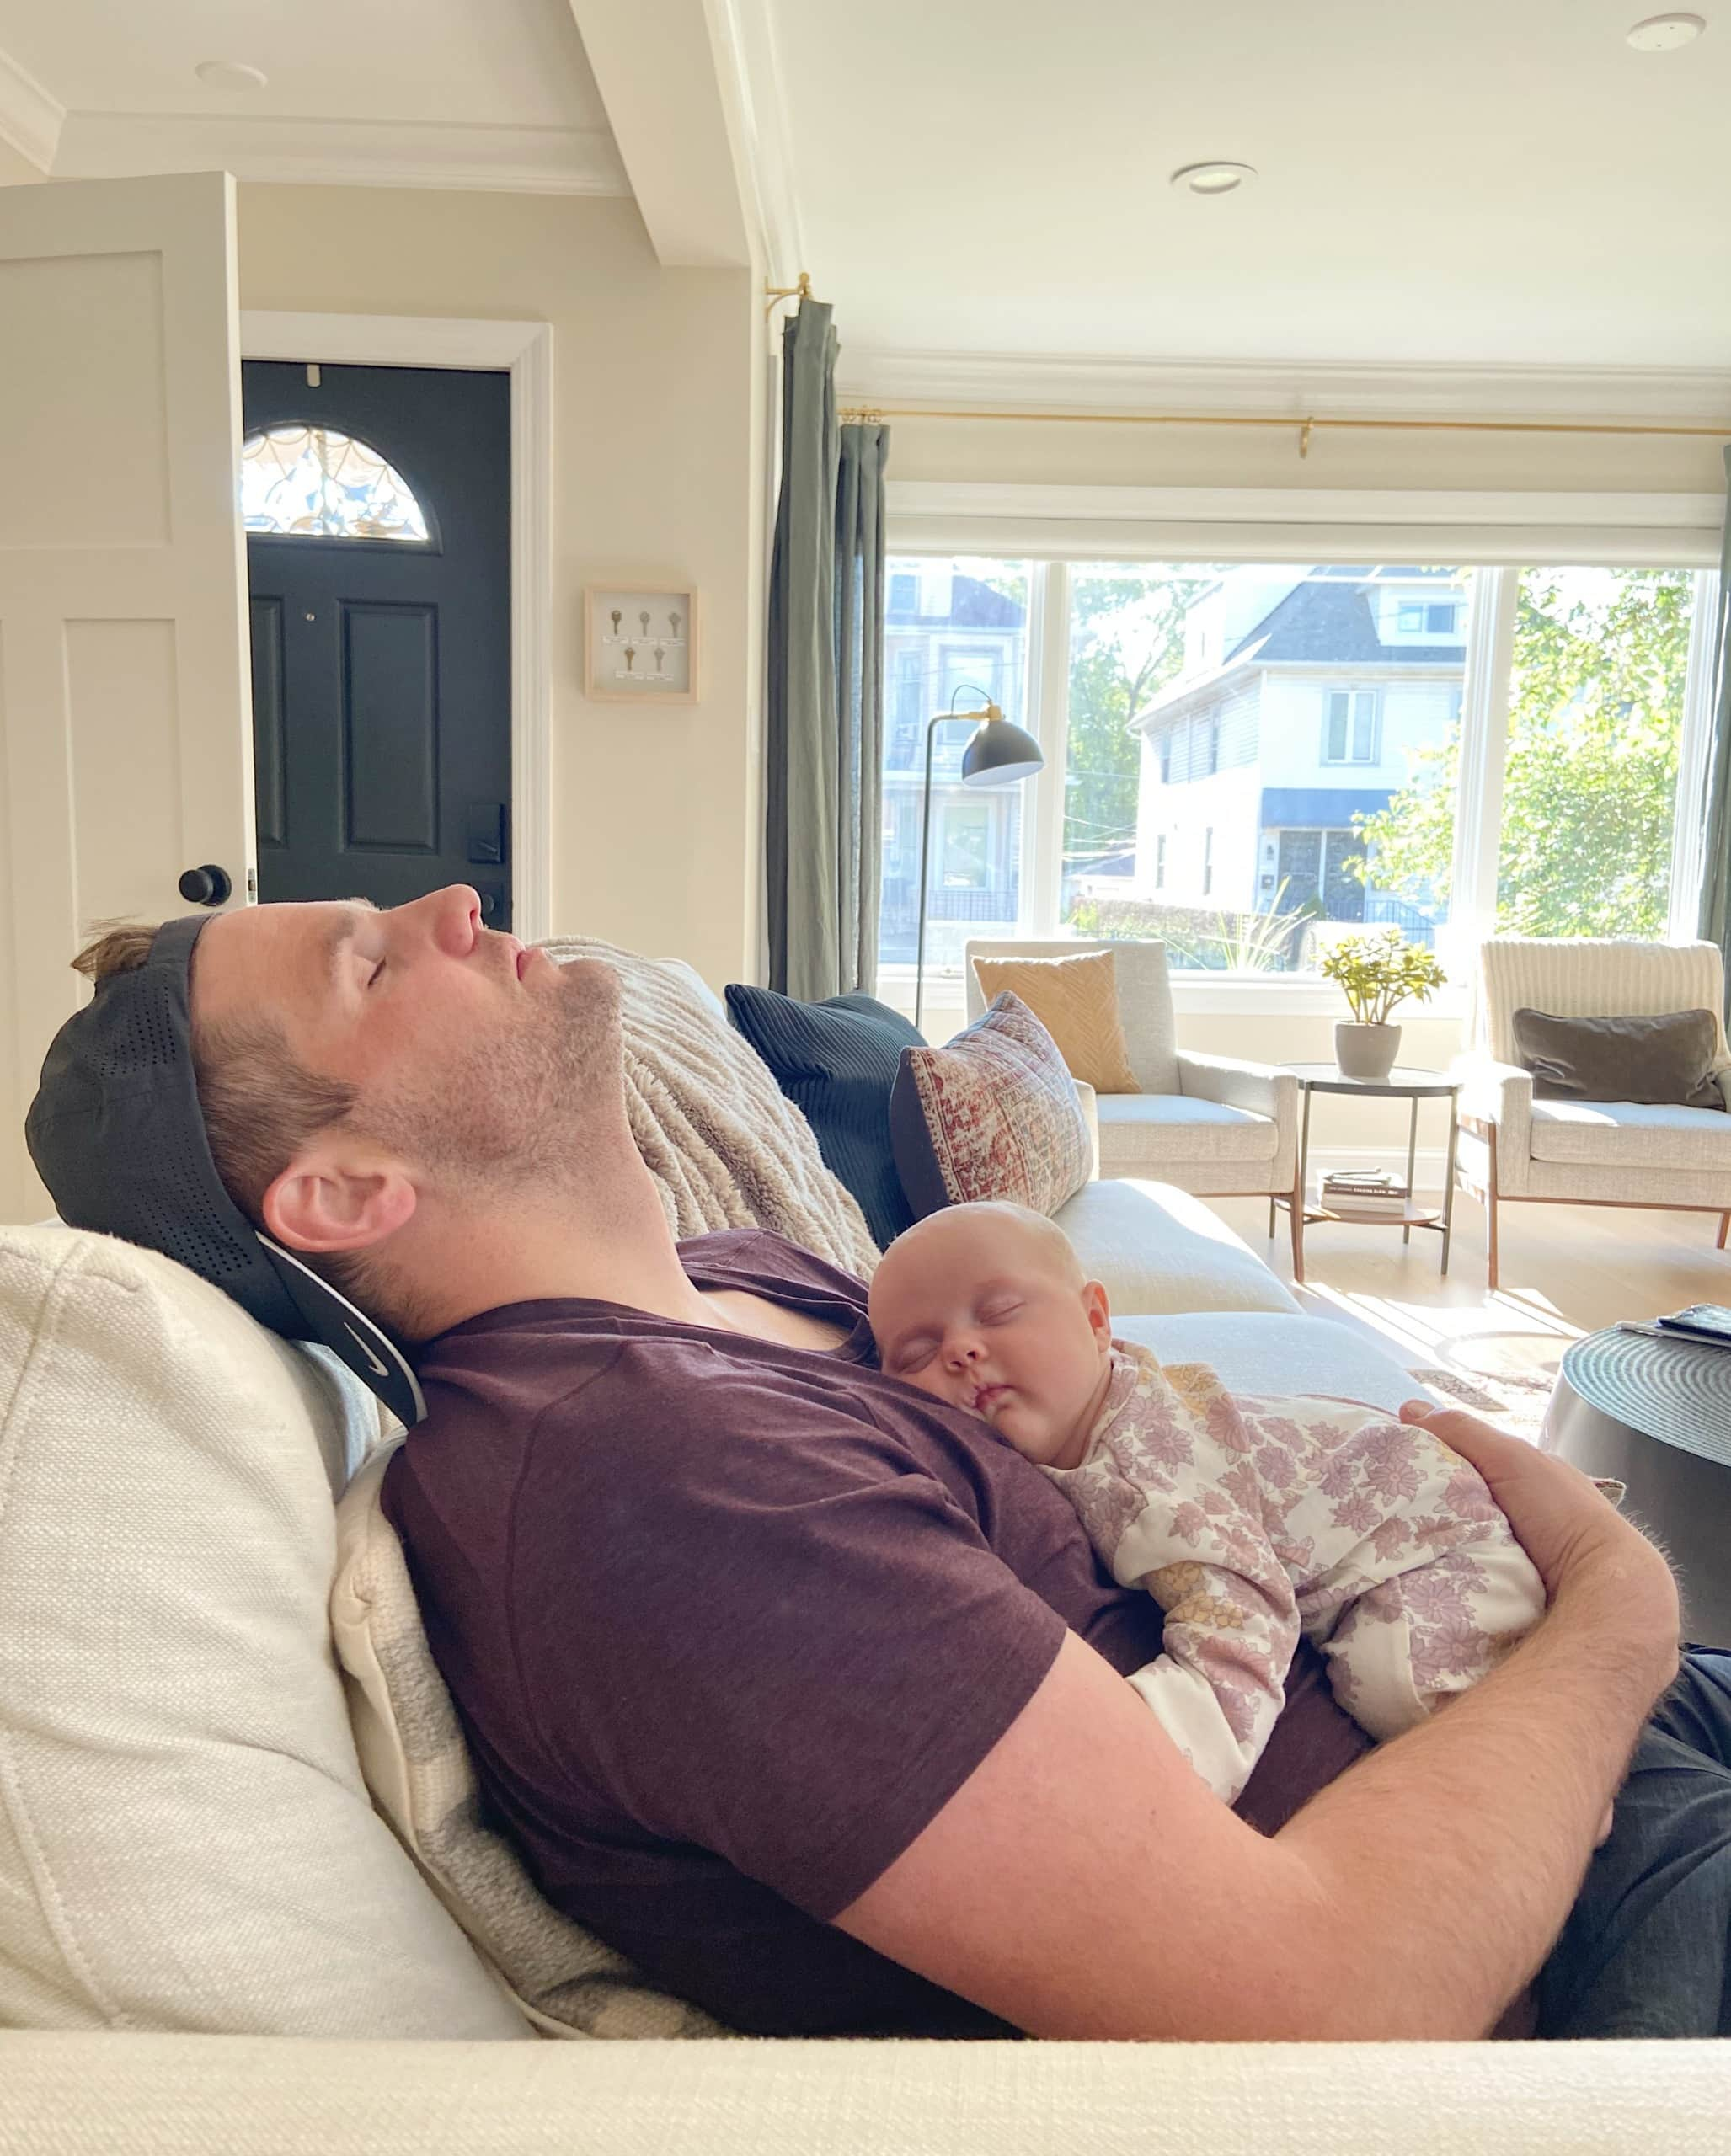 Finn resting with baby Rory